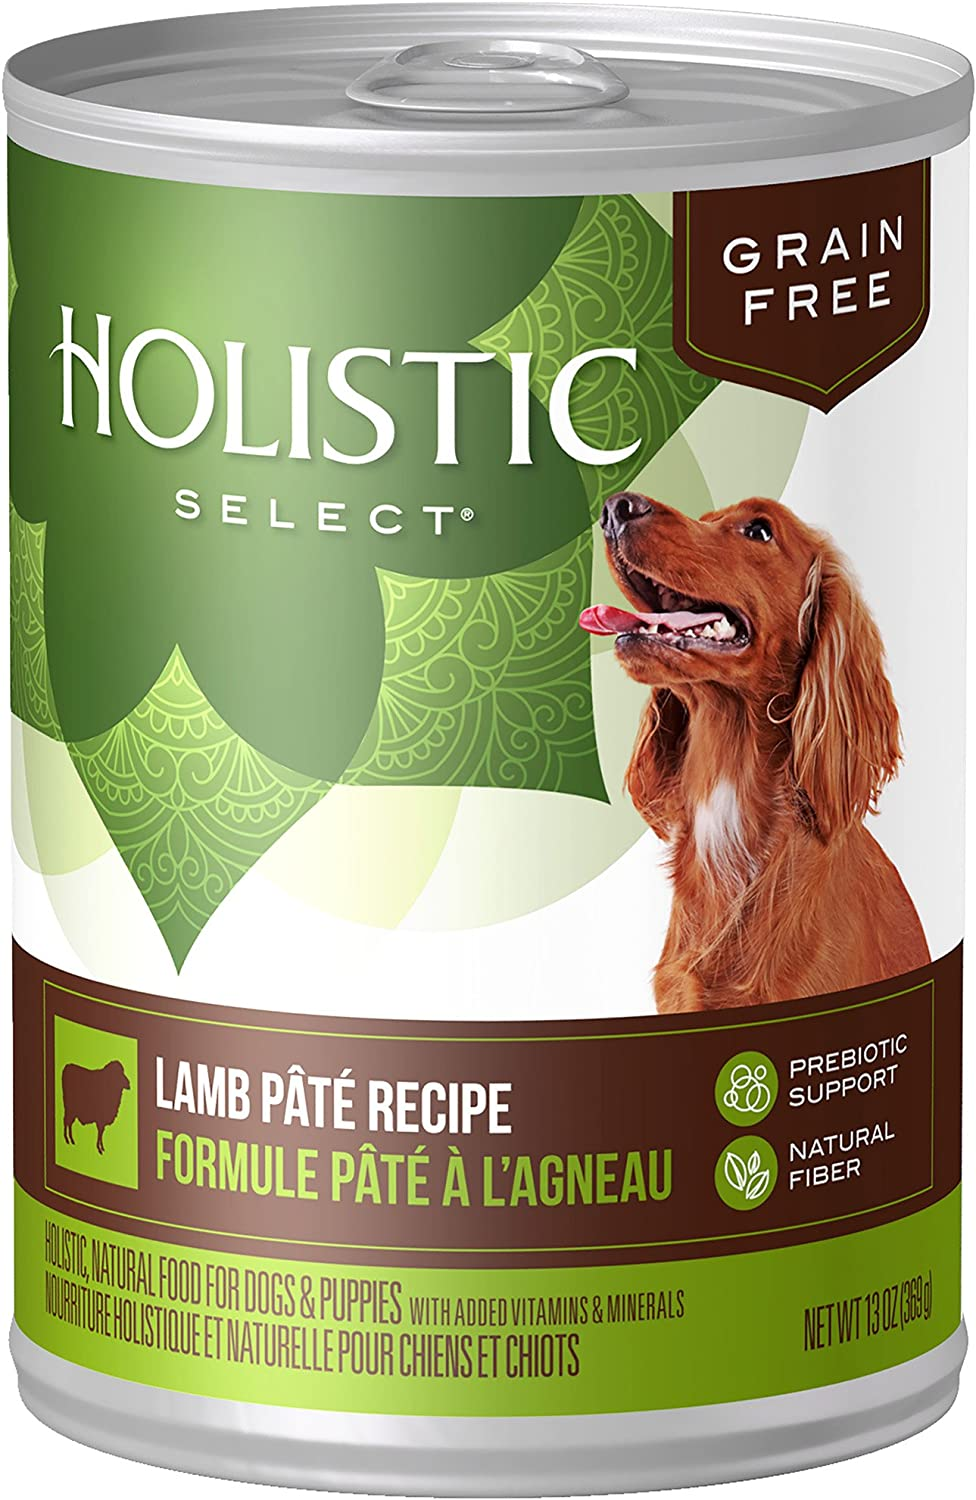 Holistic Select Natural Wet Grain Free Canned Dog Food, 13-Ounce Can (Pack Of 12)